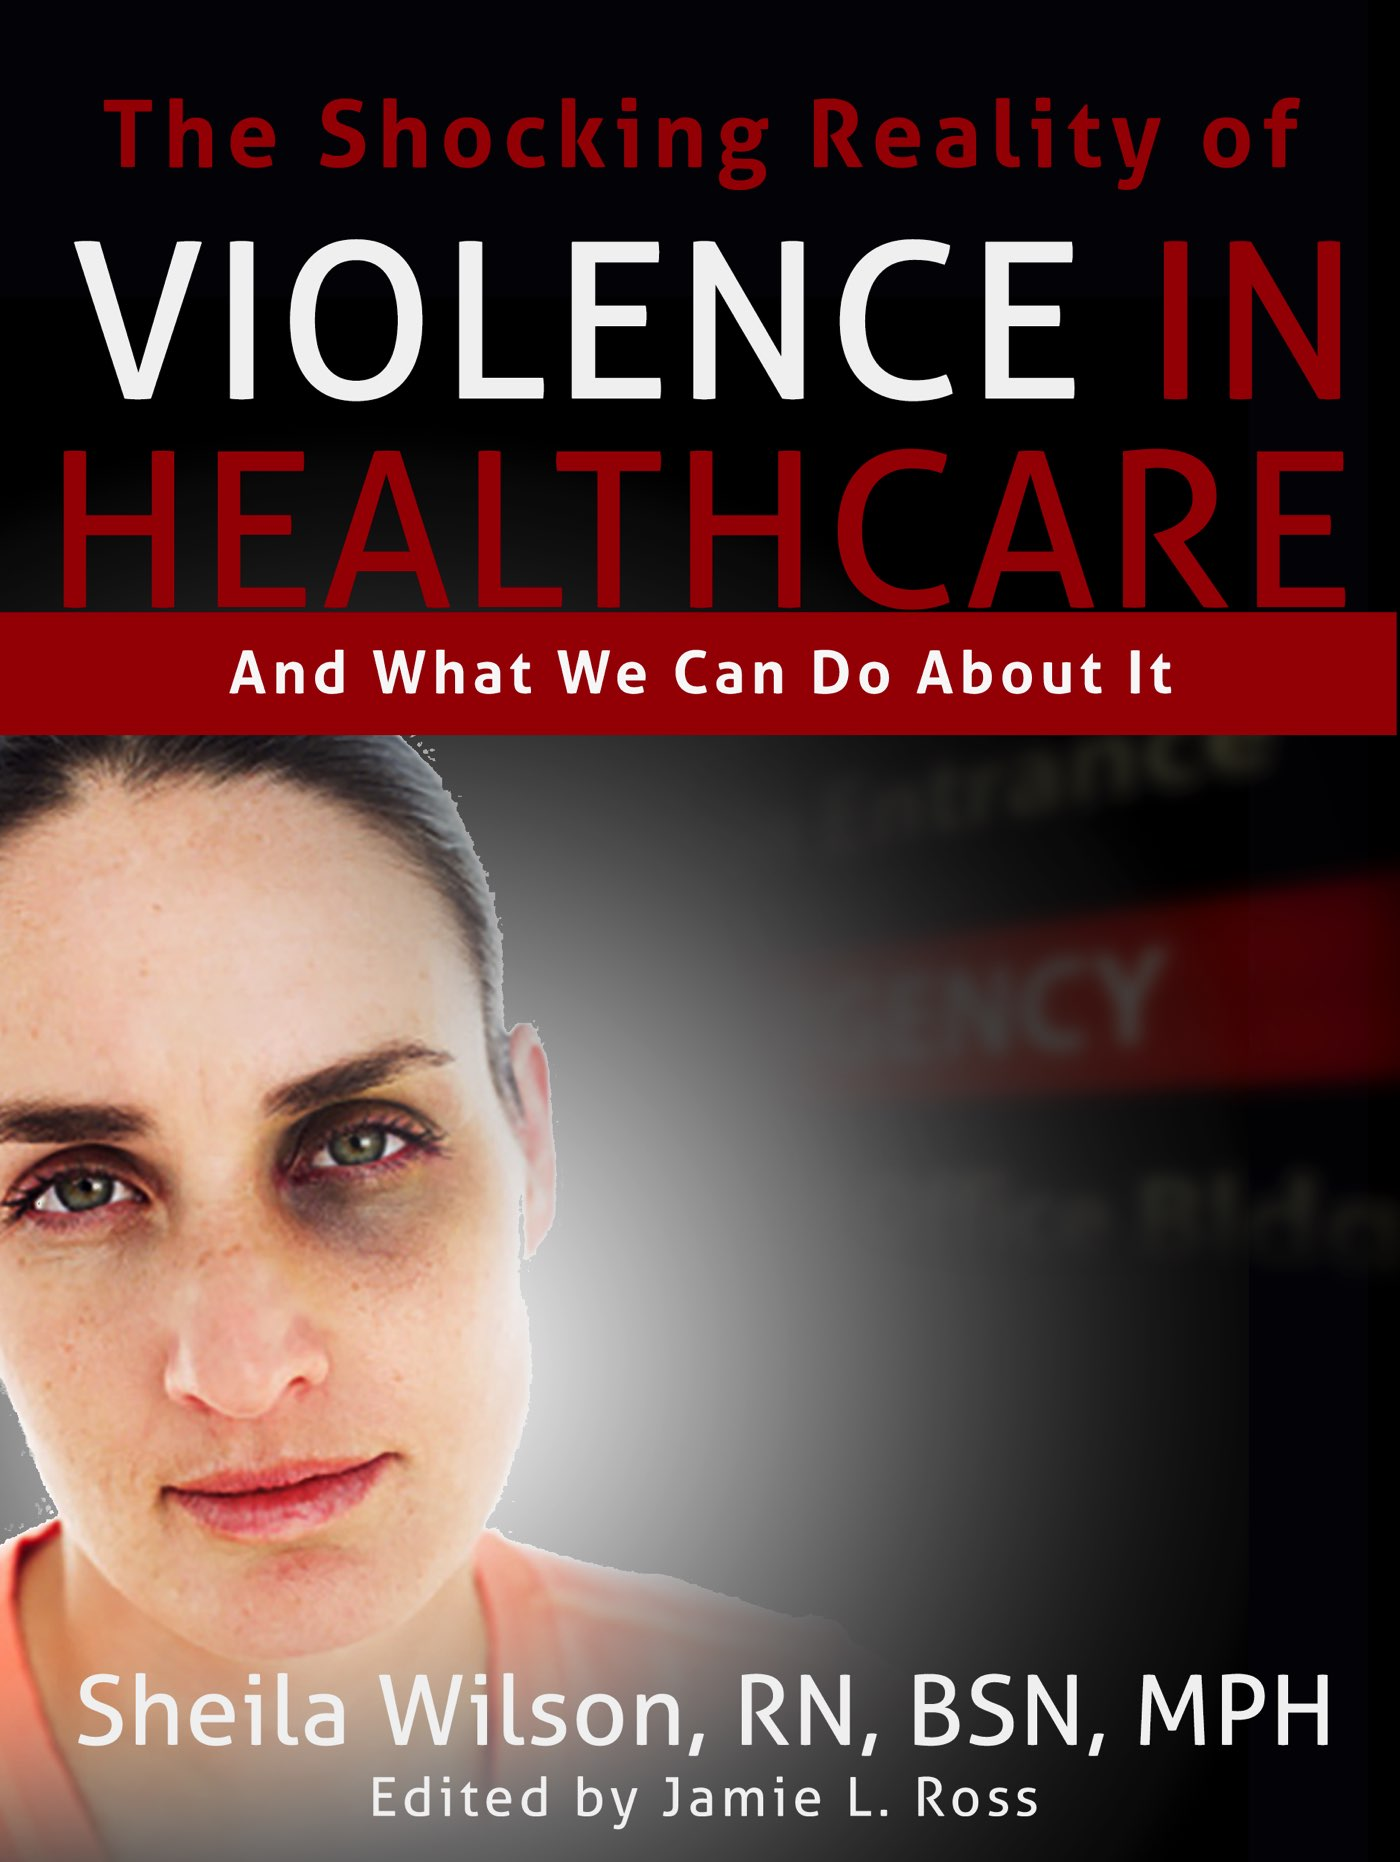 The Shocking Reality of Violence in Healthcare